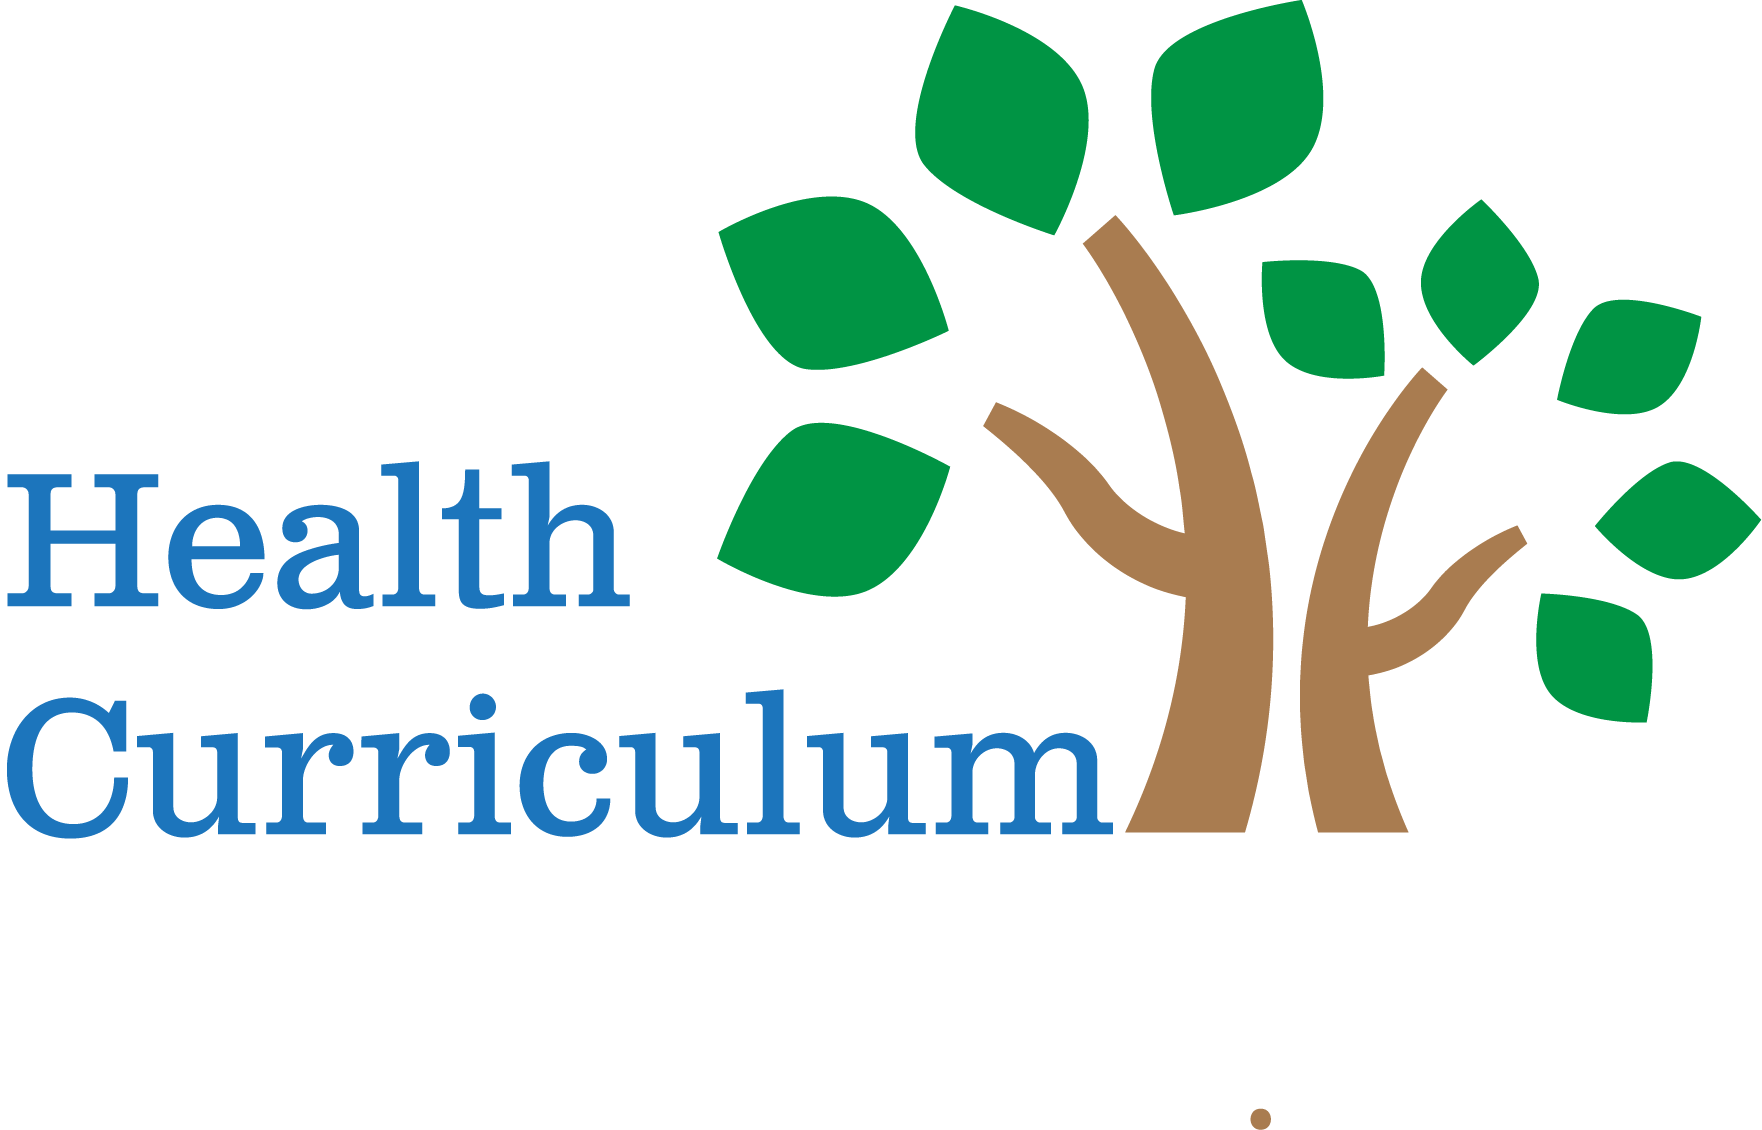 health curriculum logo